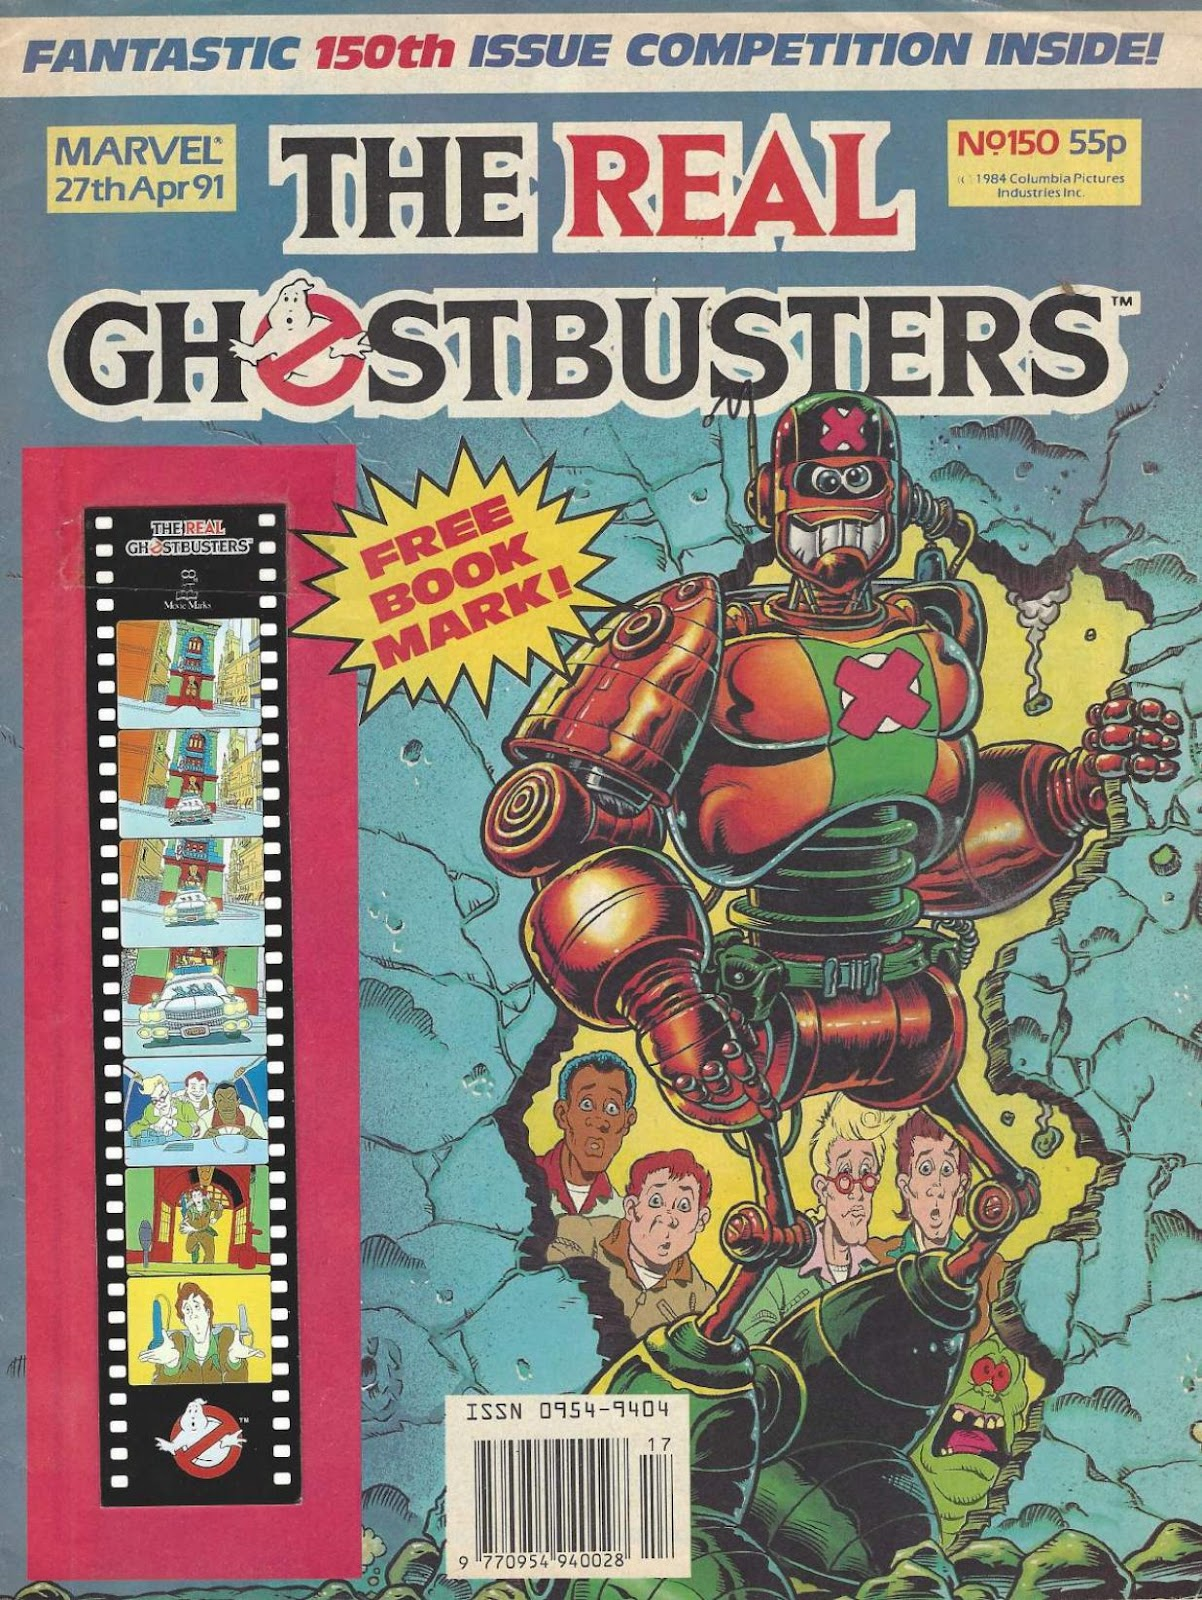 The Real Ghostbusters 150 Page 1